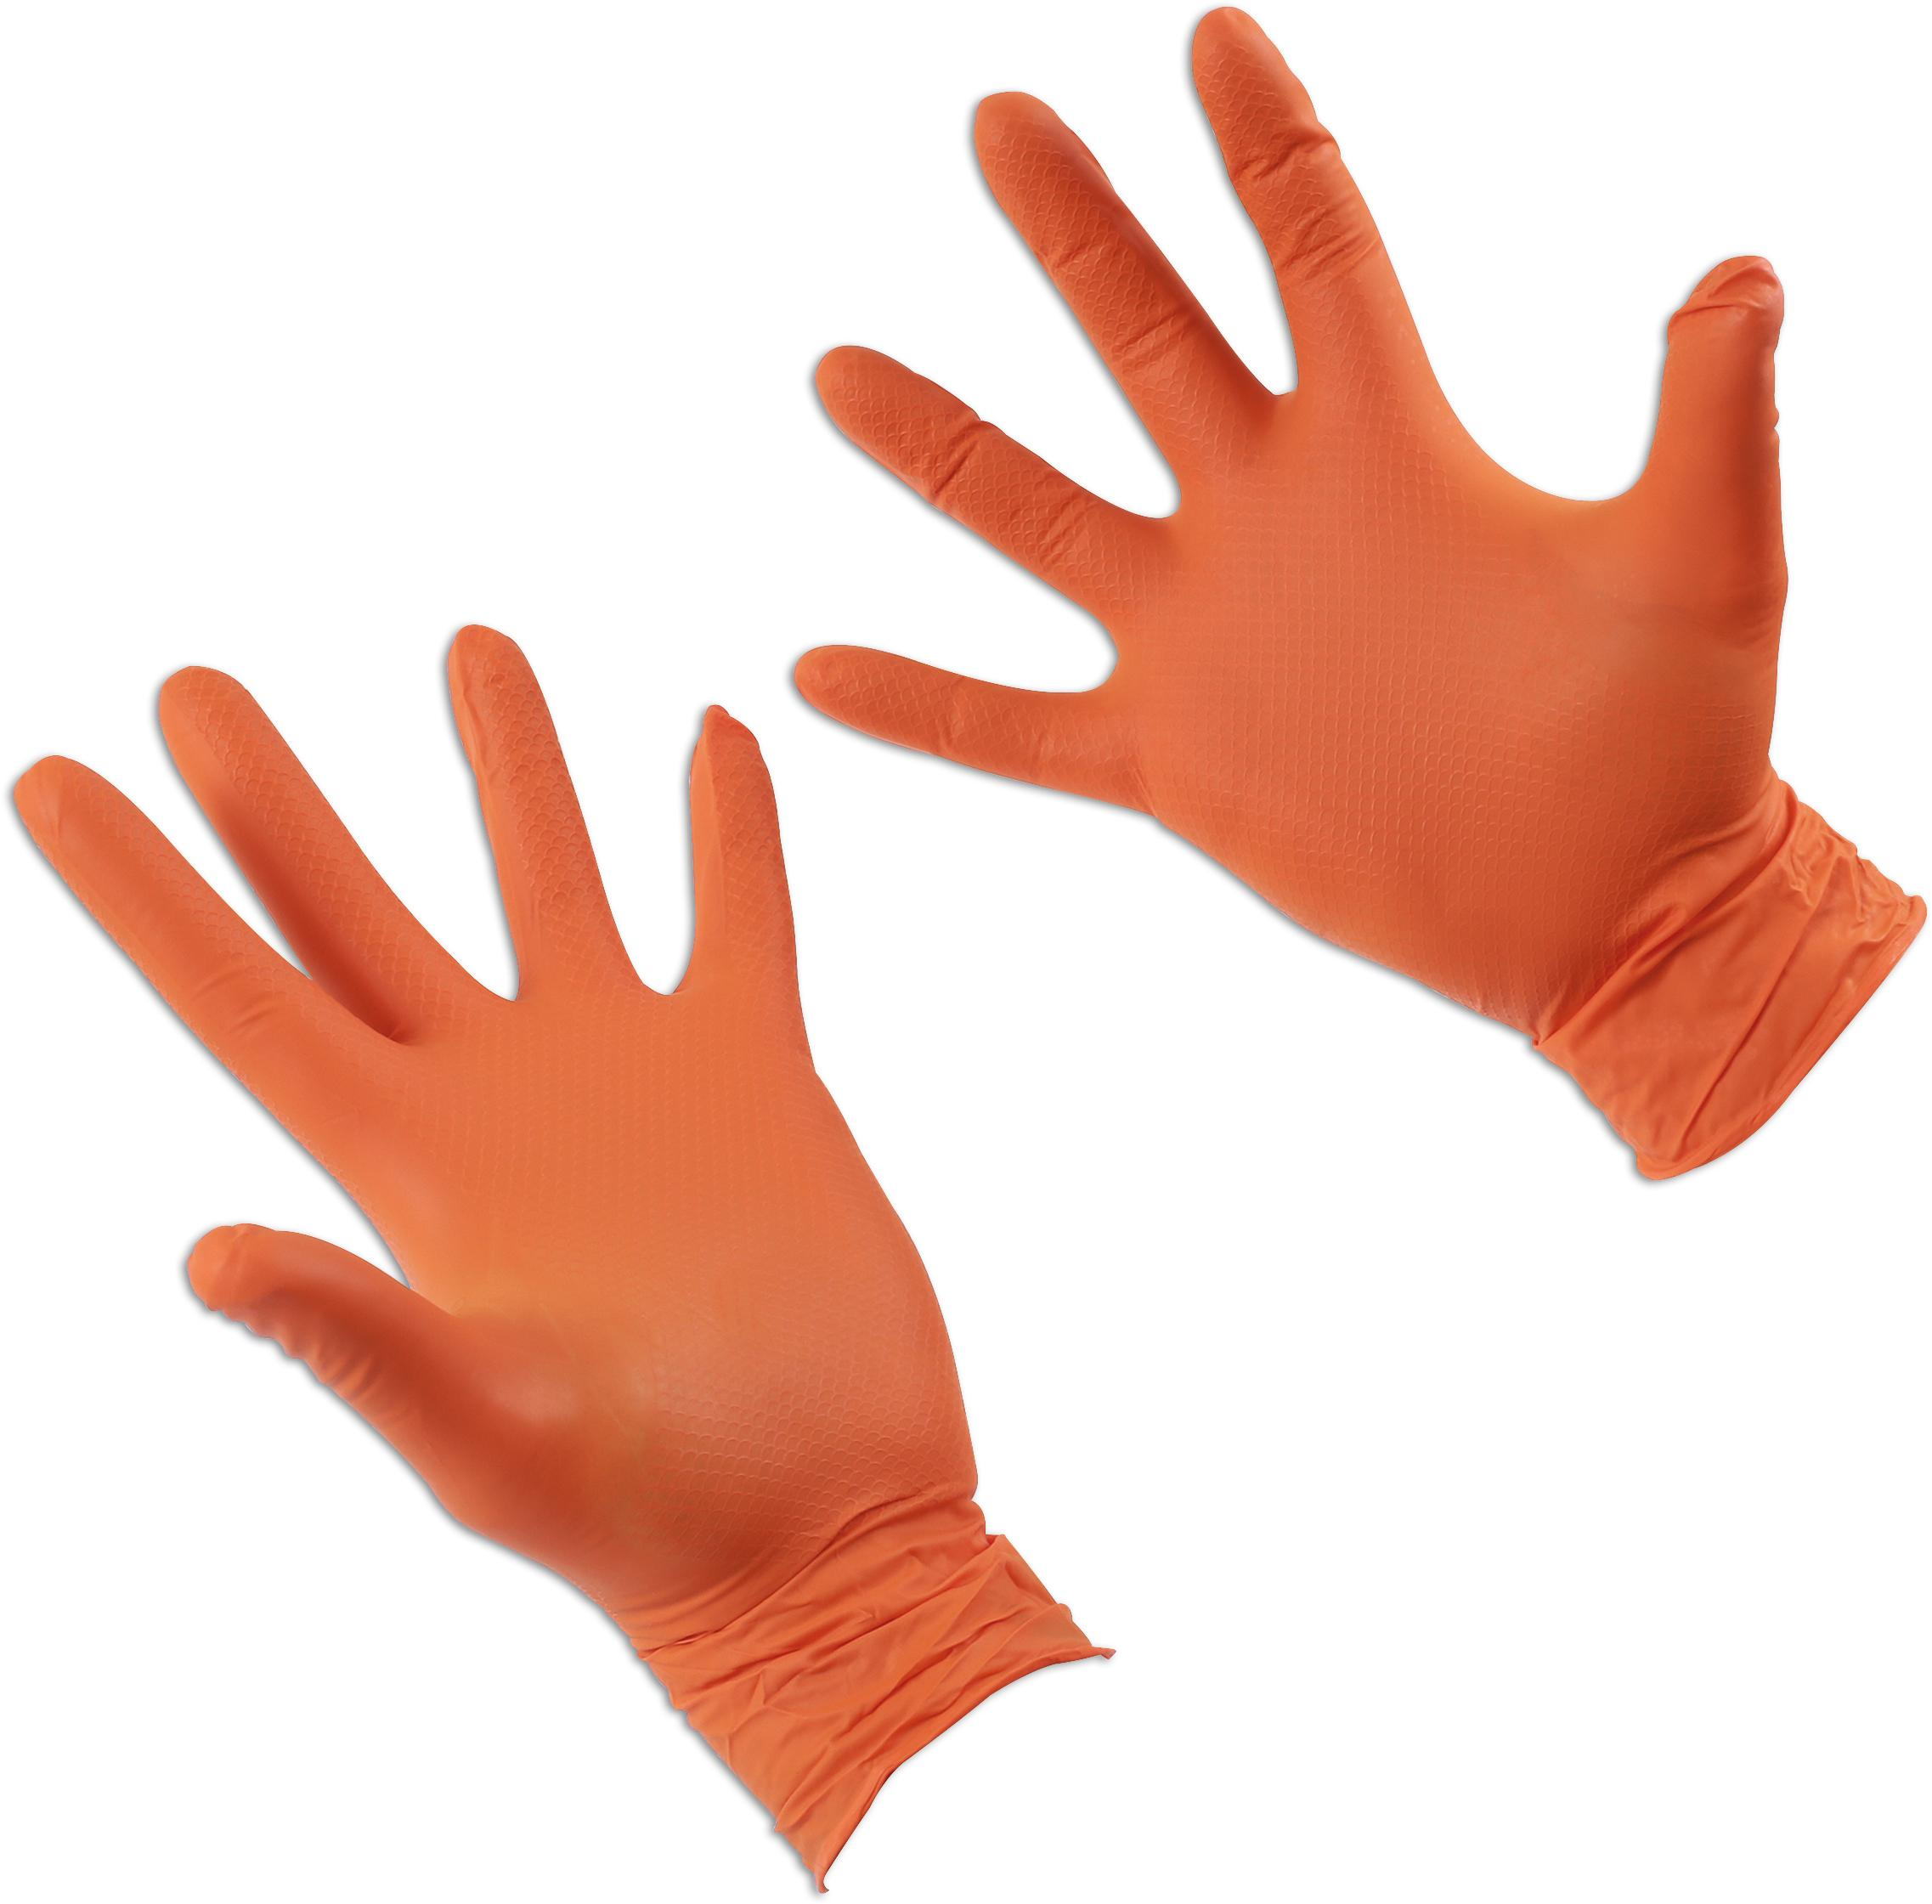 Grippaz Large Nitrile Gloves Retail Bag of 10 Pieces